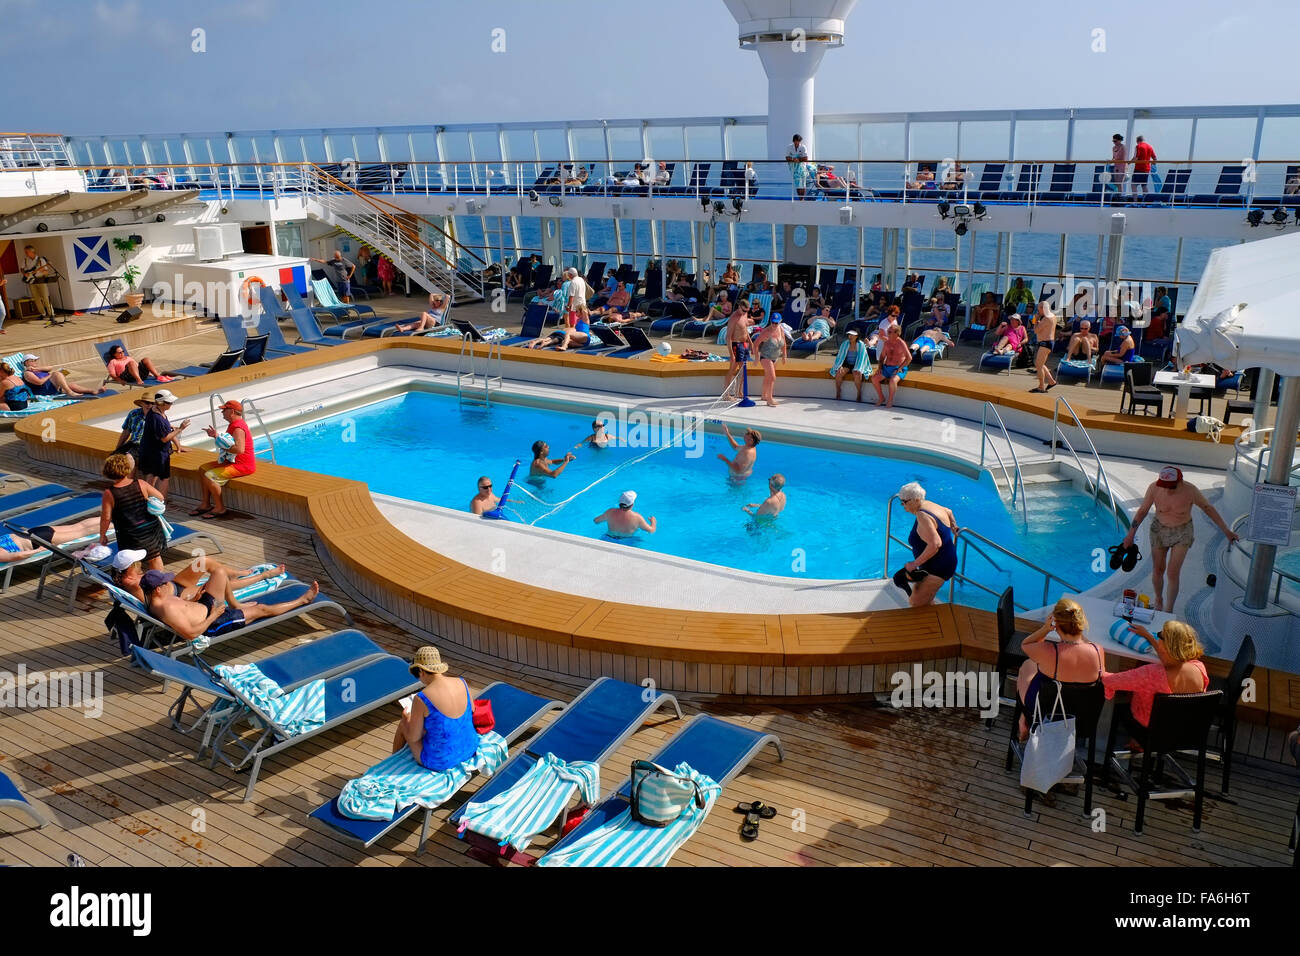 Swimming pool deck norwegian sun cruise ship stock photo 92343632 alamy for River cruise ships with swimming pool